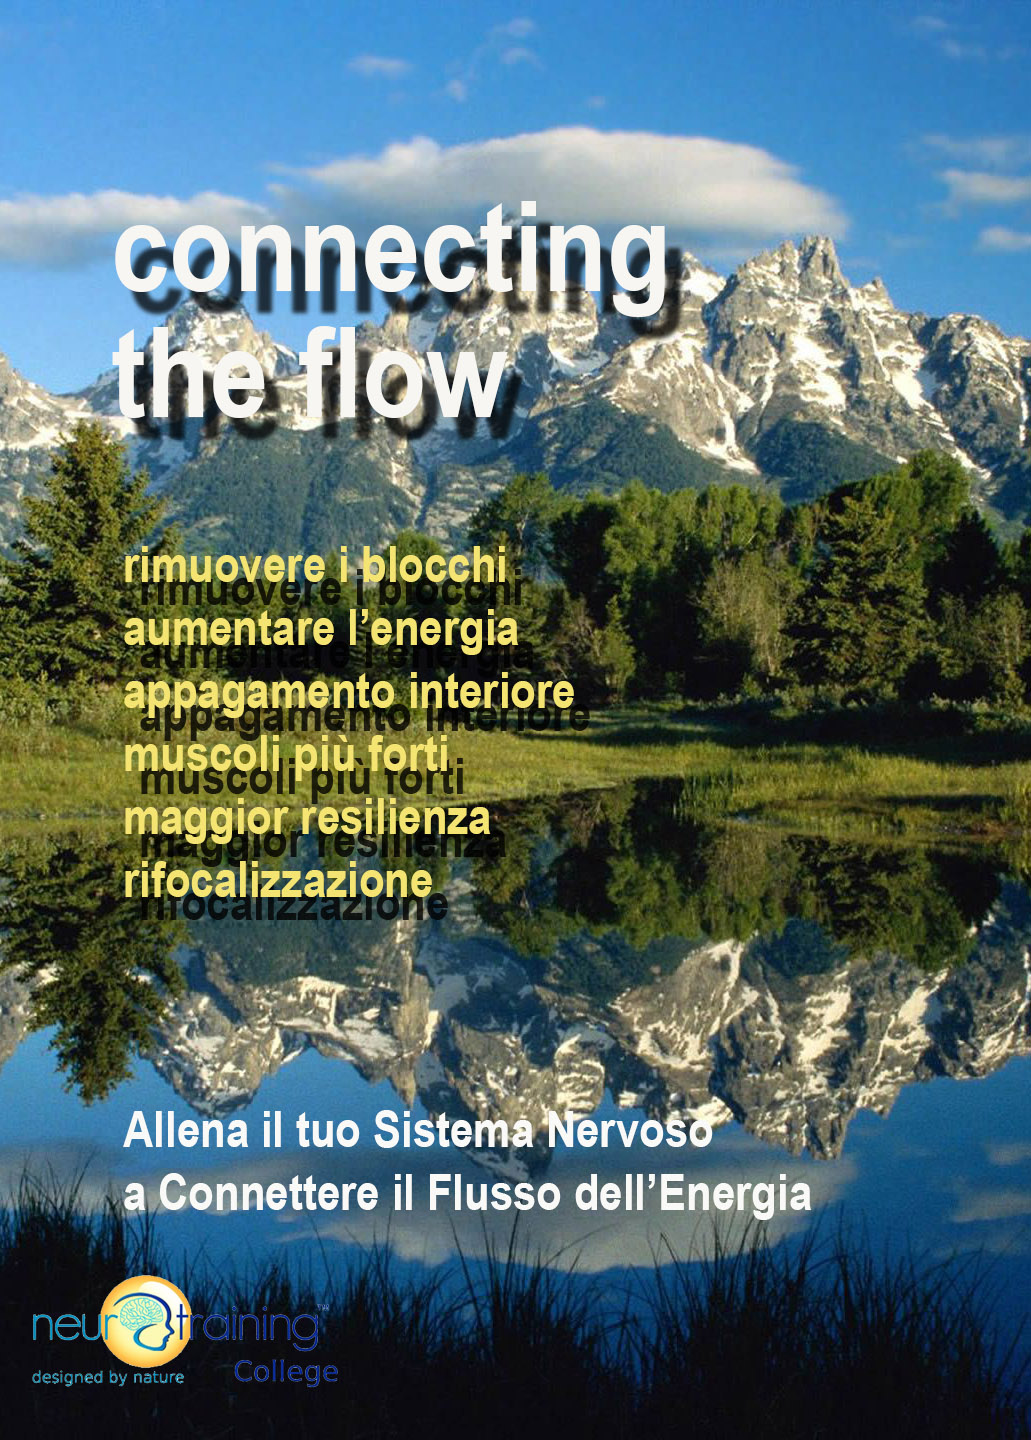 CONNECTING THE FLOW / Riconnettere il Flusso